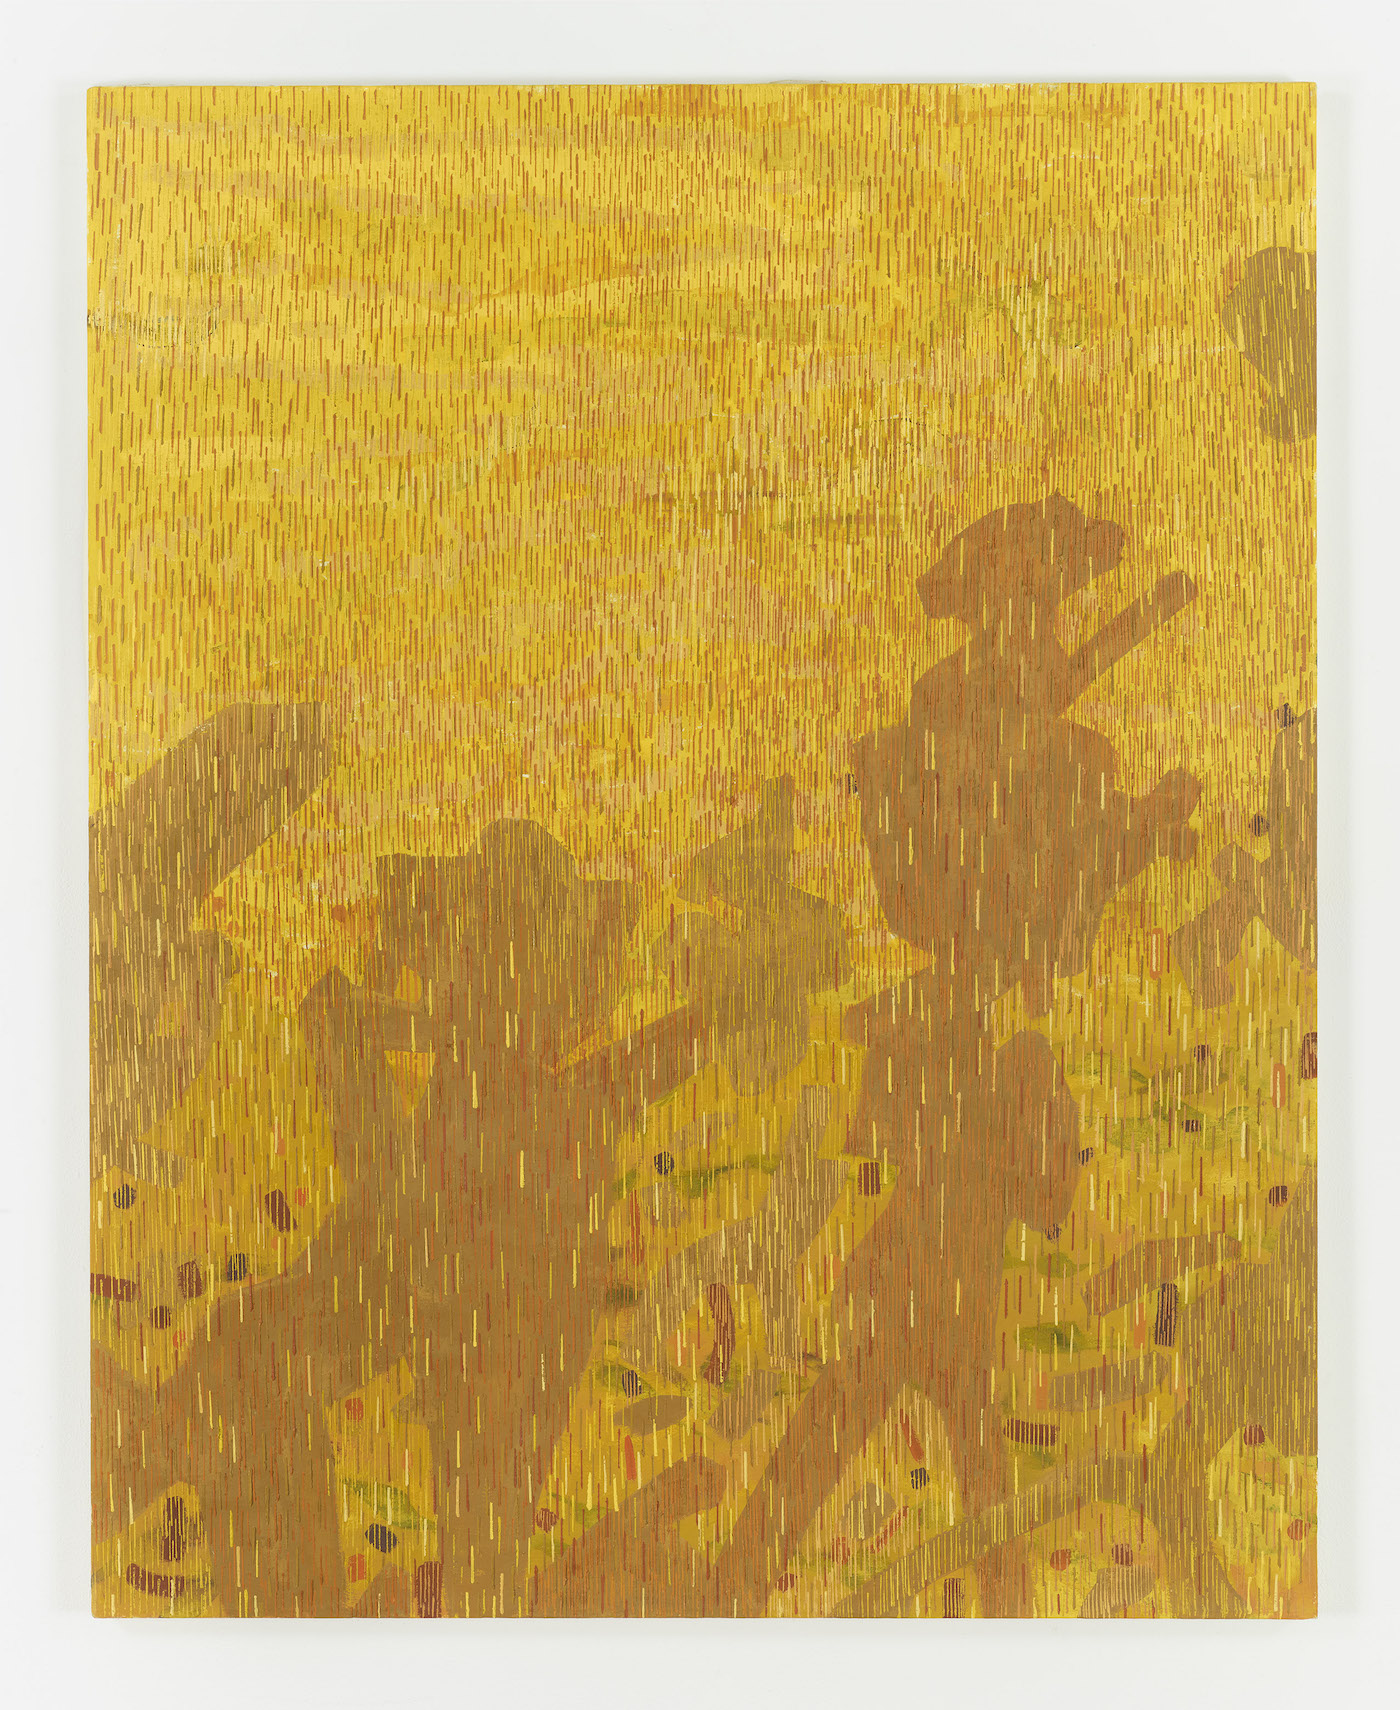 LEE MULLICAN Caravan to the Sun 1957 Oil on canvas 50 x 40 in.